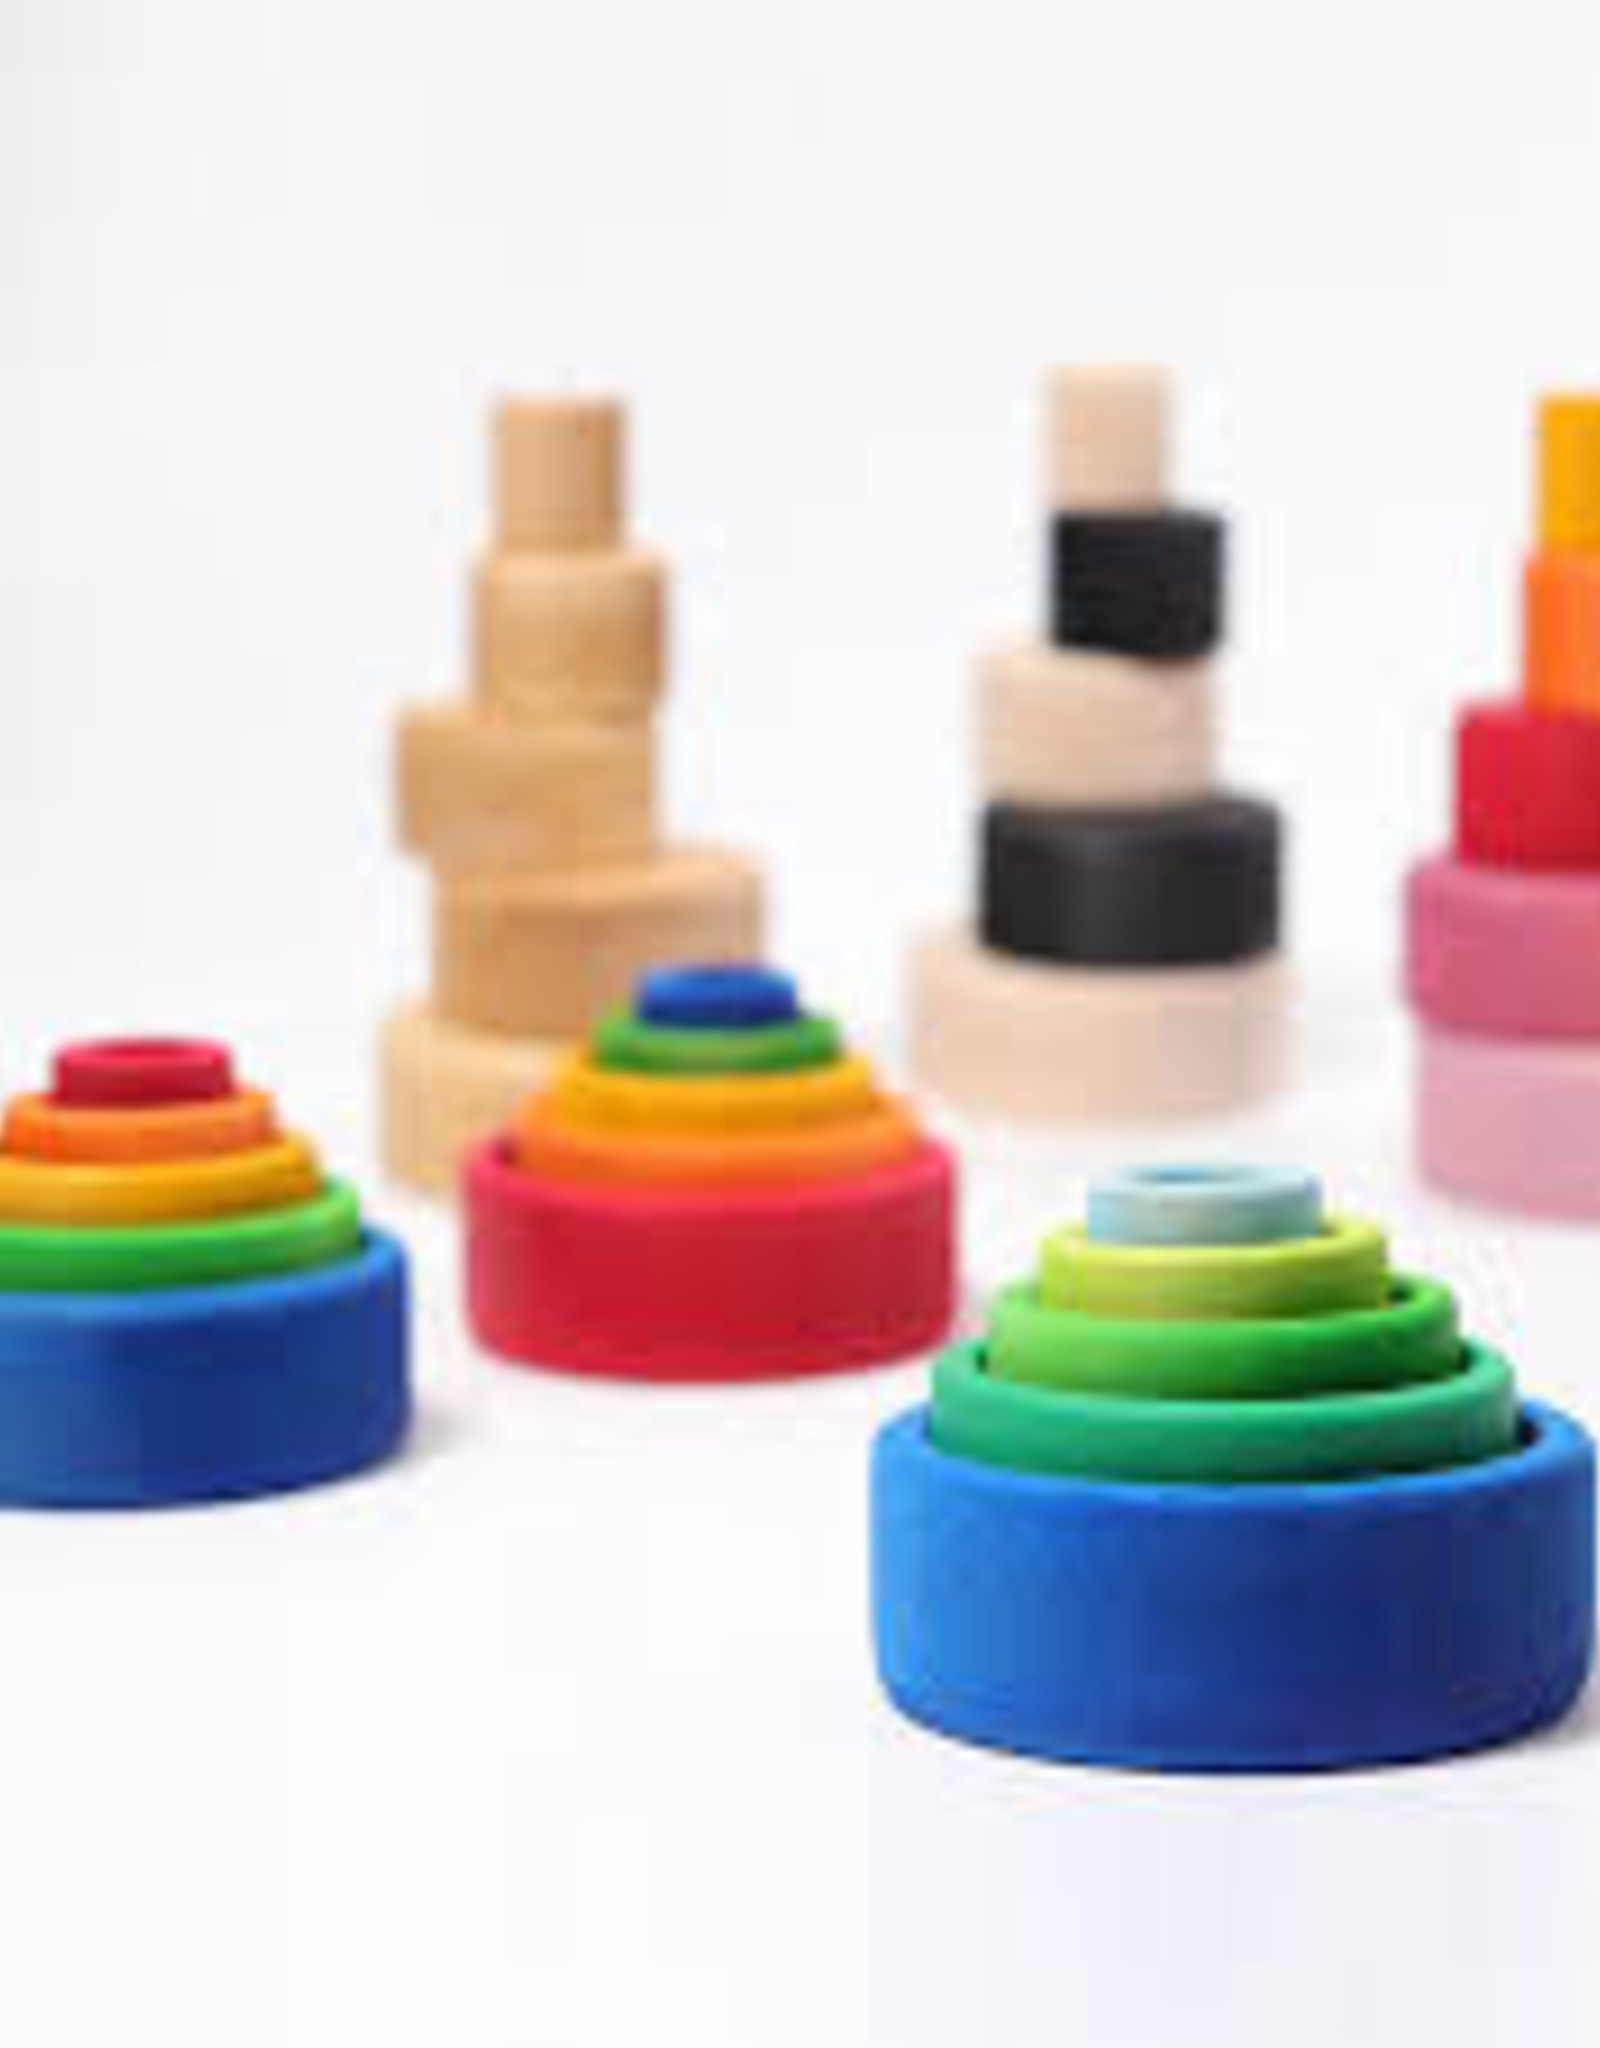 Grimm's Set of Stacking Bowls